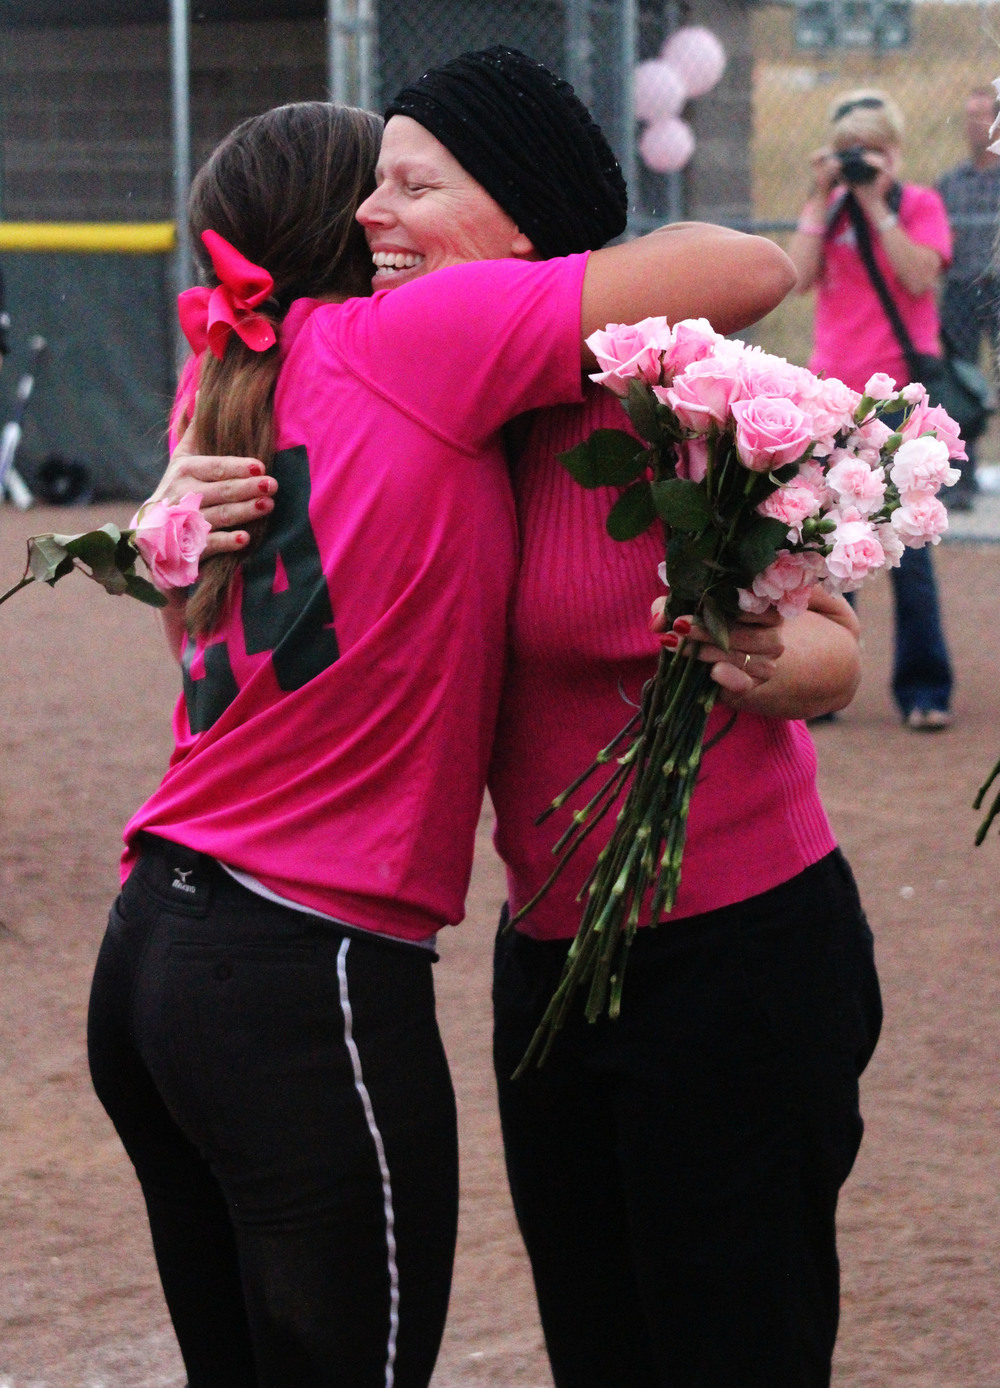 Susan Cash embraces senior Kayla Lewis during the annual softball Pink Game. Cash was diagnosed with stage 3 breast cancer earlier in the year and, after a series of remissions and complications, passed away in July of 2016. Published October 2015, Vista Now